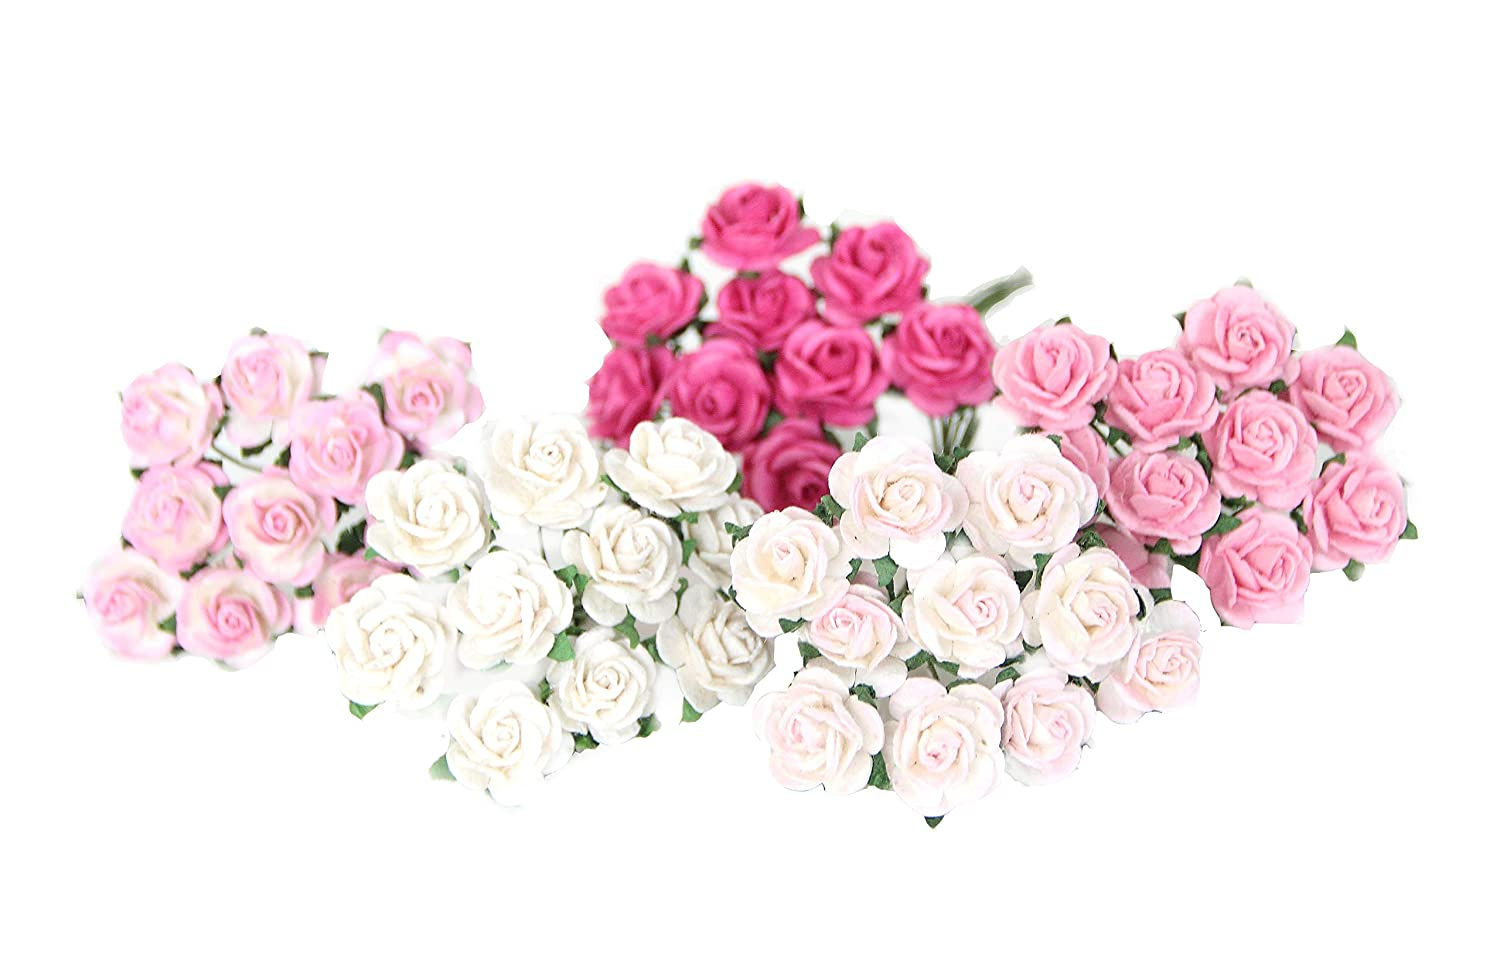 Amazoncom 50 Shades Of Pink Paper Roses For Scrapbooking Wedding